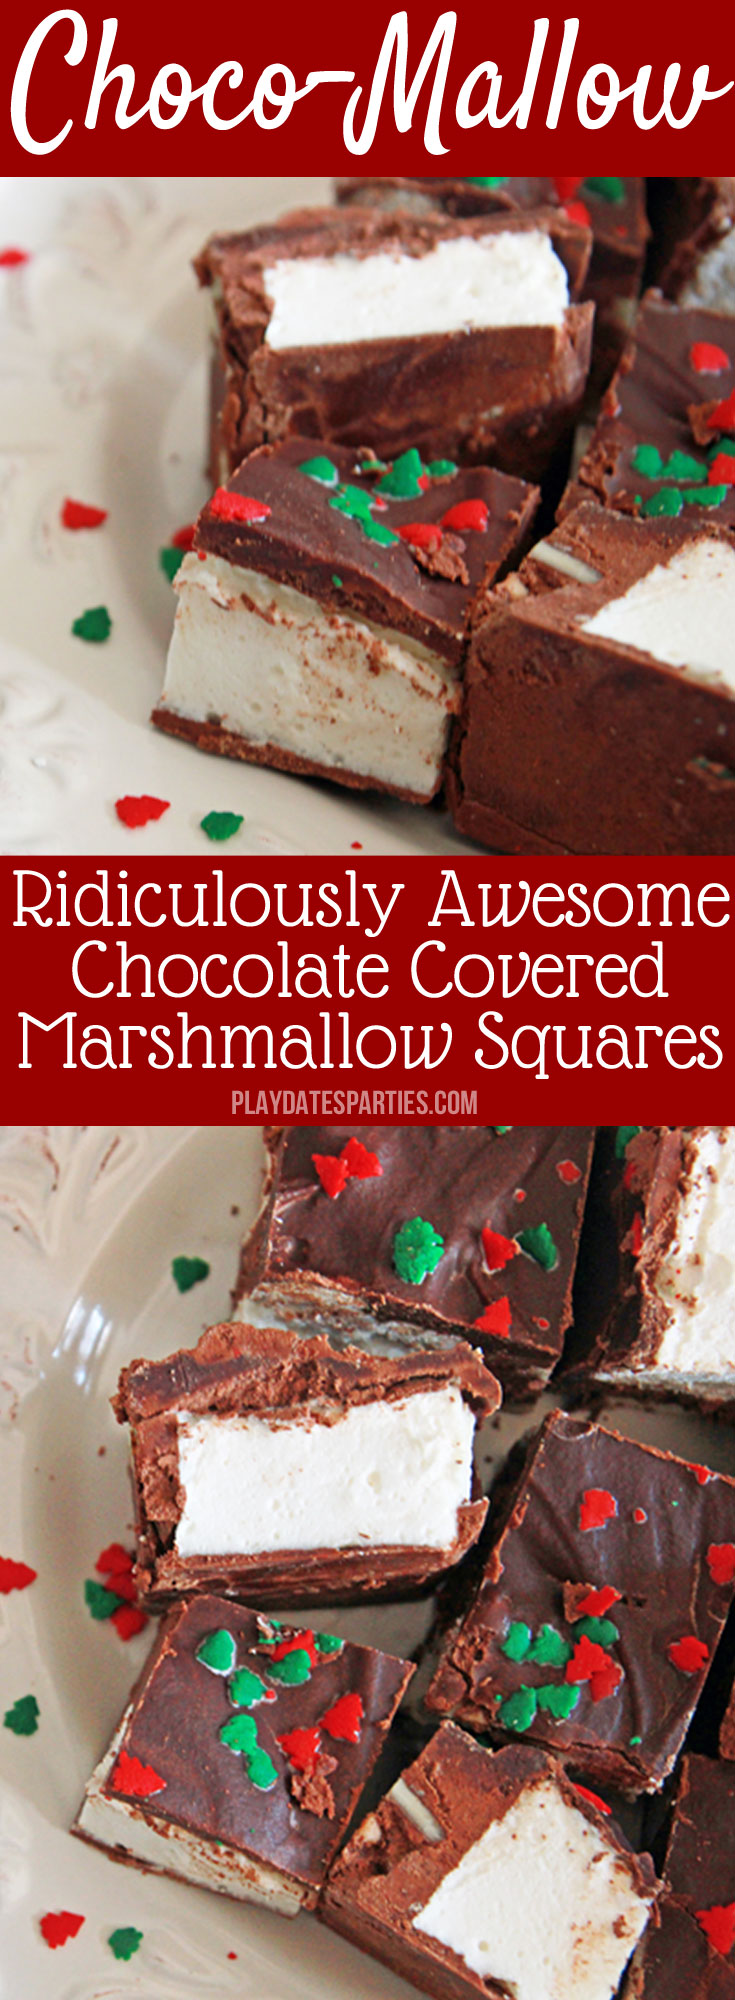 Homemade #Marshmallows get a makeover even adults will love with choco-mallow candy. Just a touch of coffee, dark chocolate, and toasted nuts turn this chocolate and marshmallow #candy #recipe into a sophisticated treat for everyone in the family.